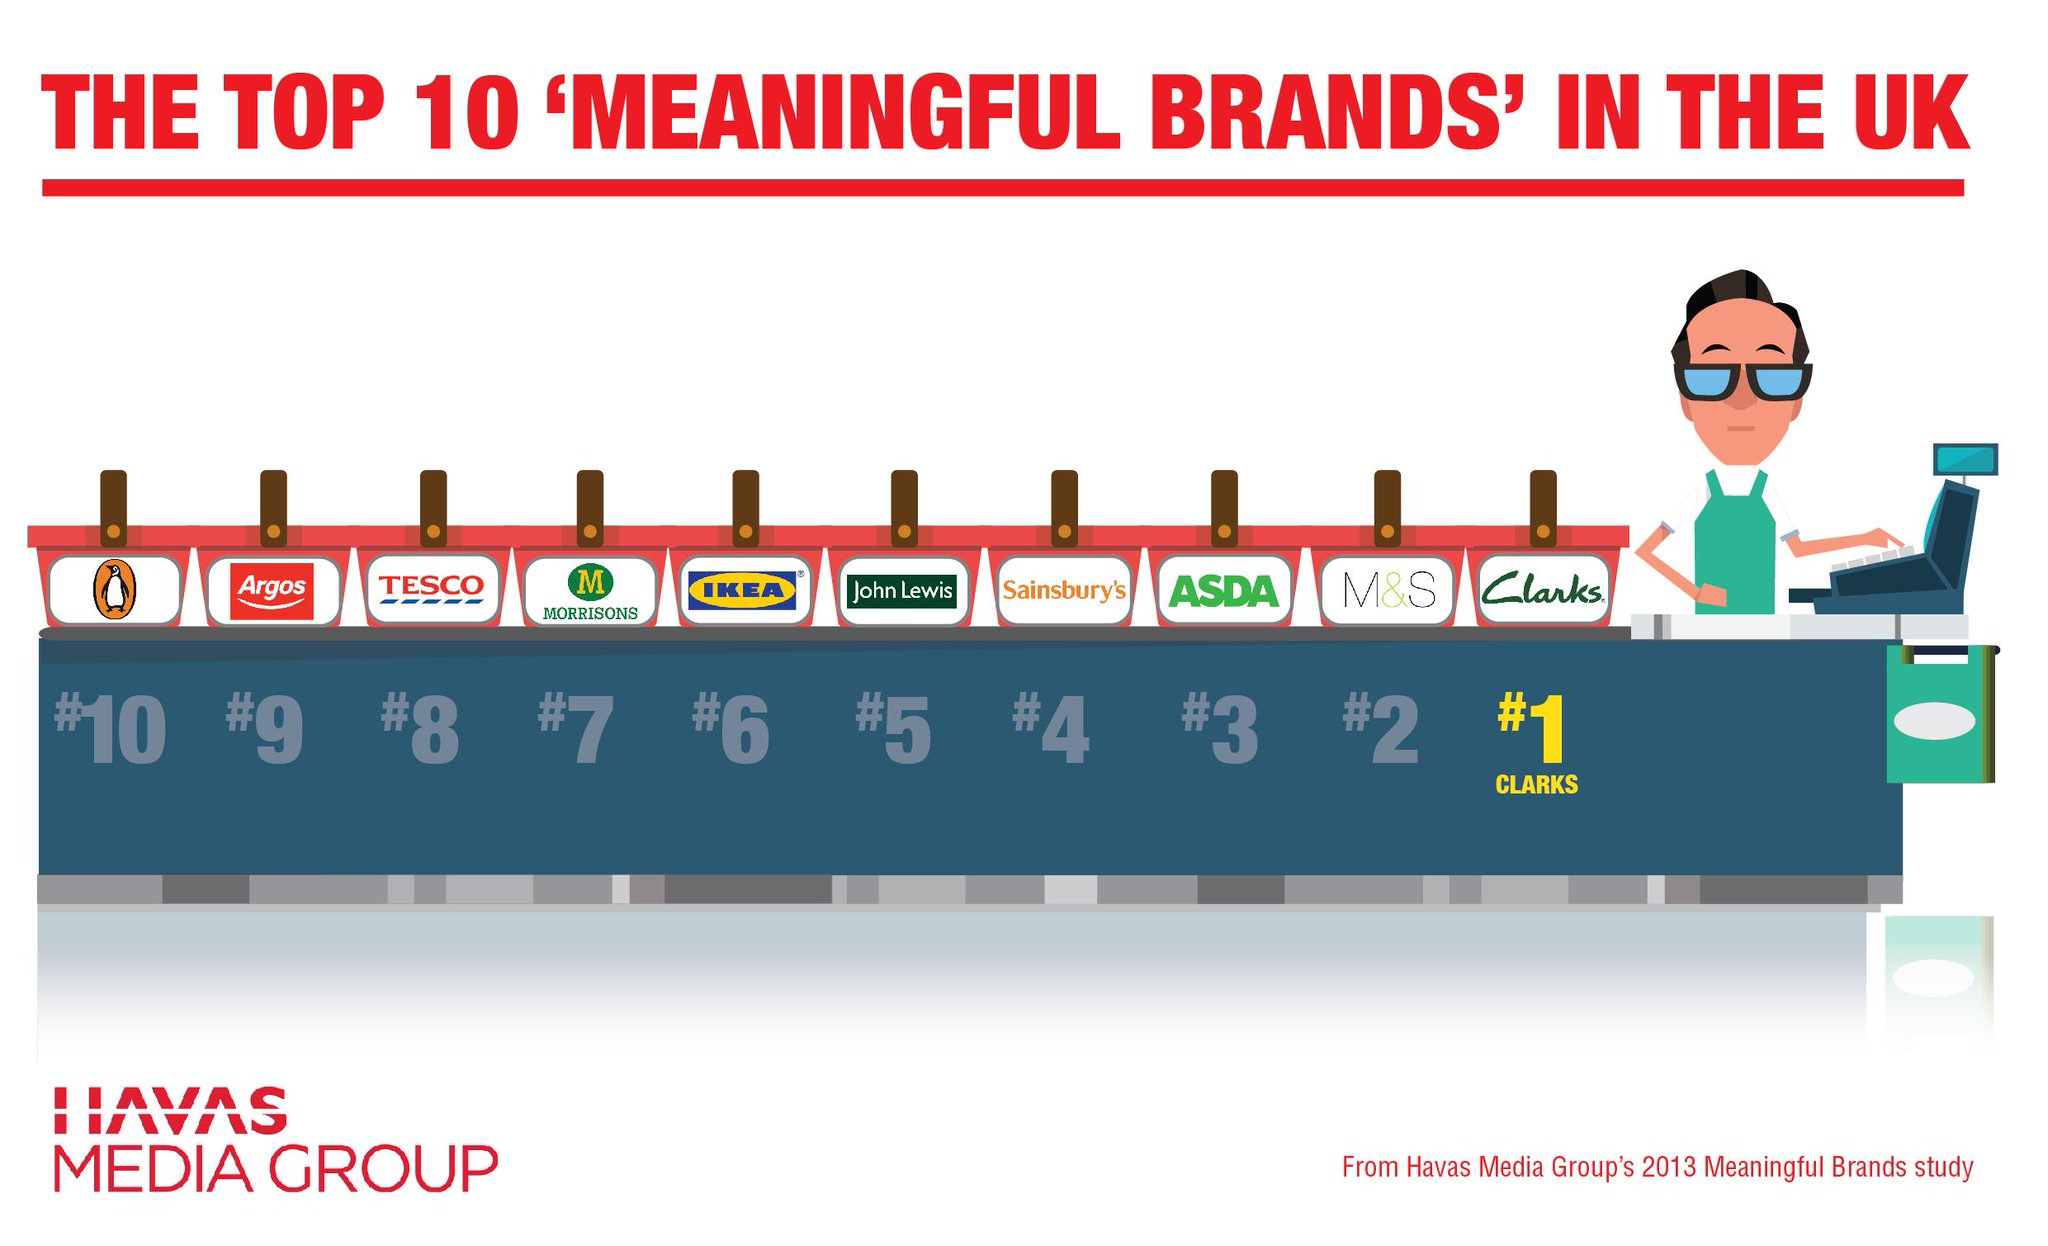 Retail was the most meaningful category in our 2013 #MeaningfulBrands survey. Top 10 brands here.. #meaningfulretail http://t.co/V9dBxt8cwc